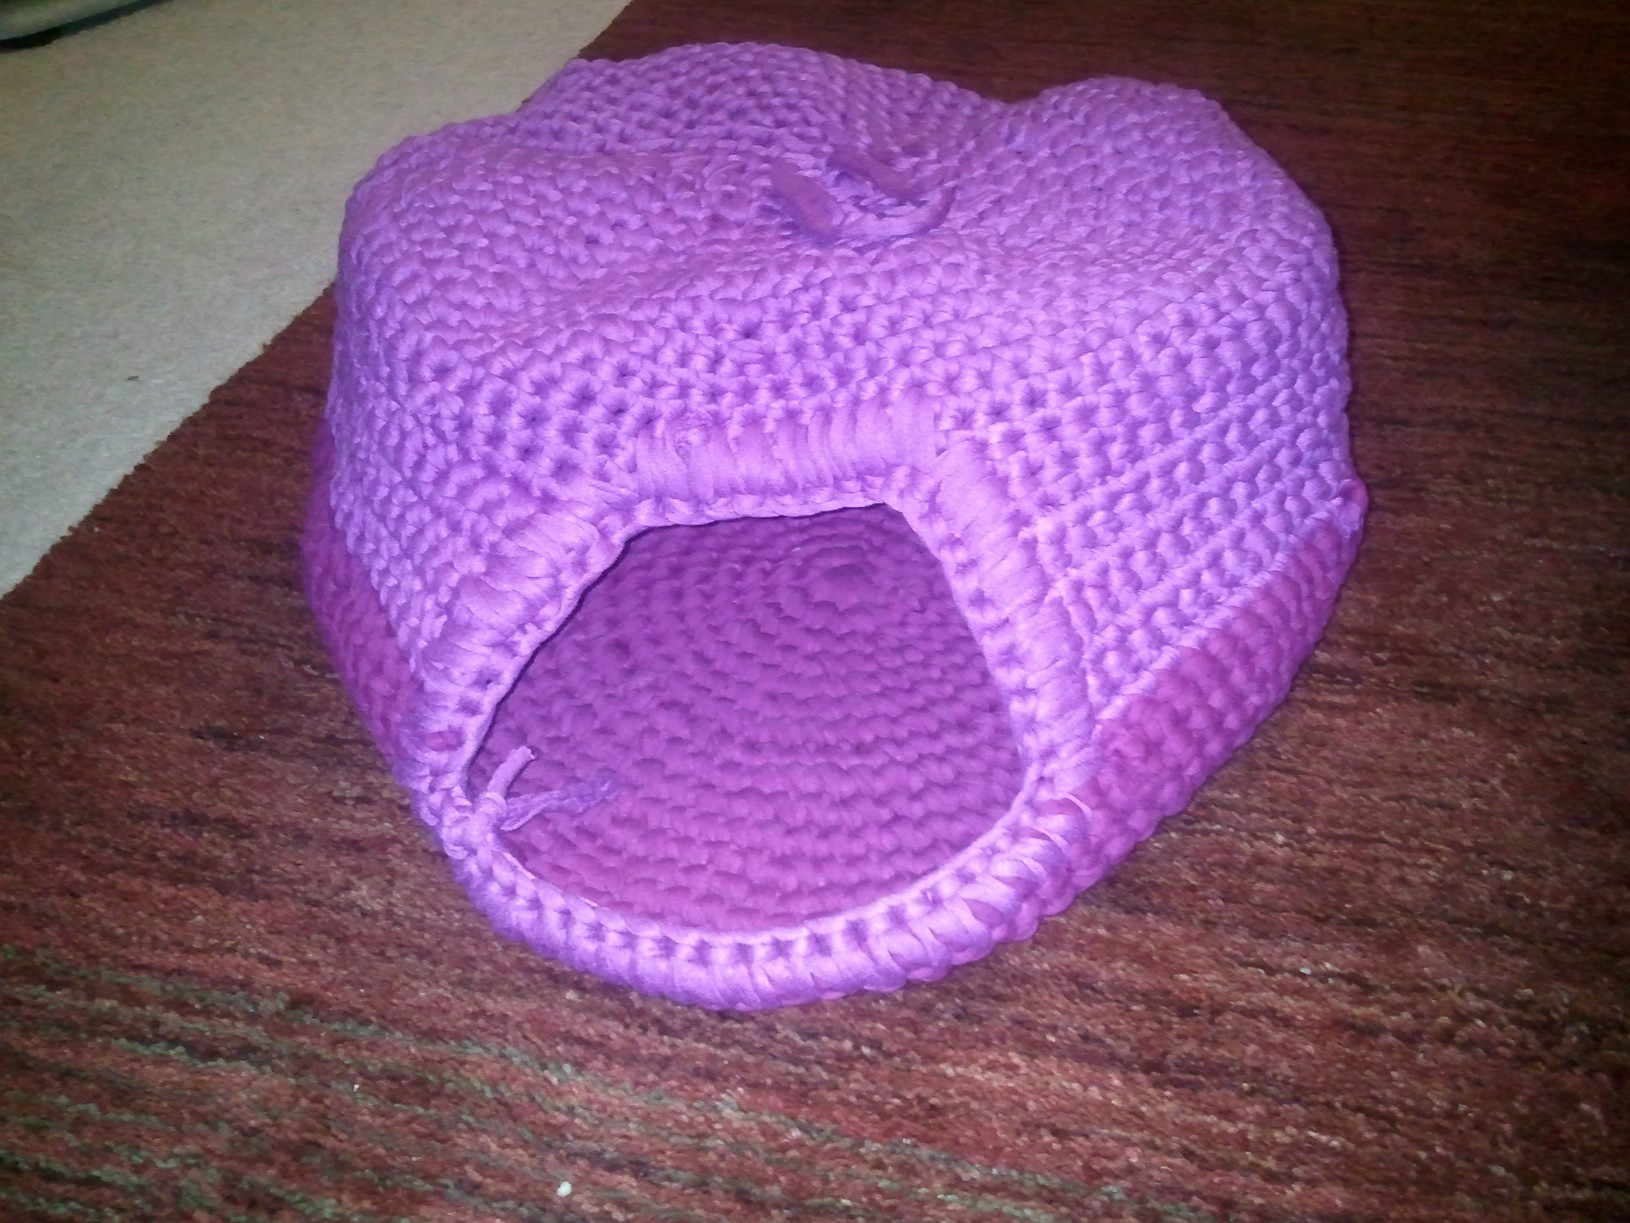 Crochet Pattern For Cat Bed : 301 Moved Permanently